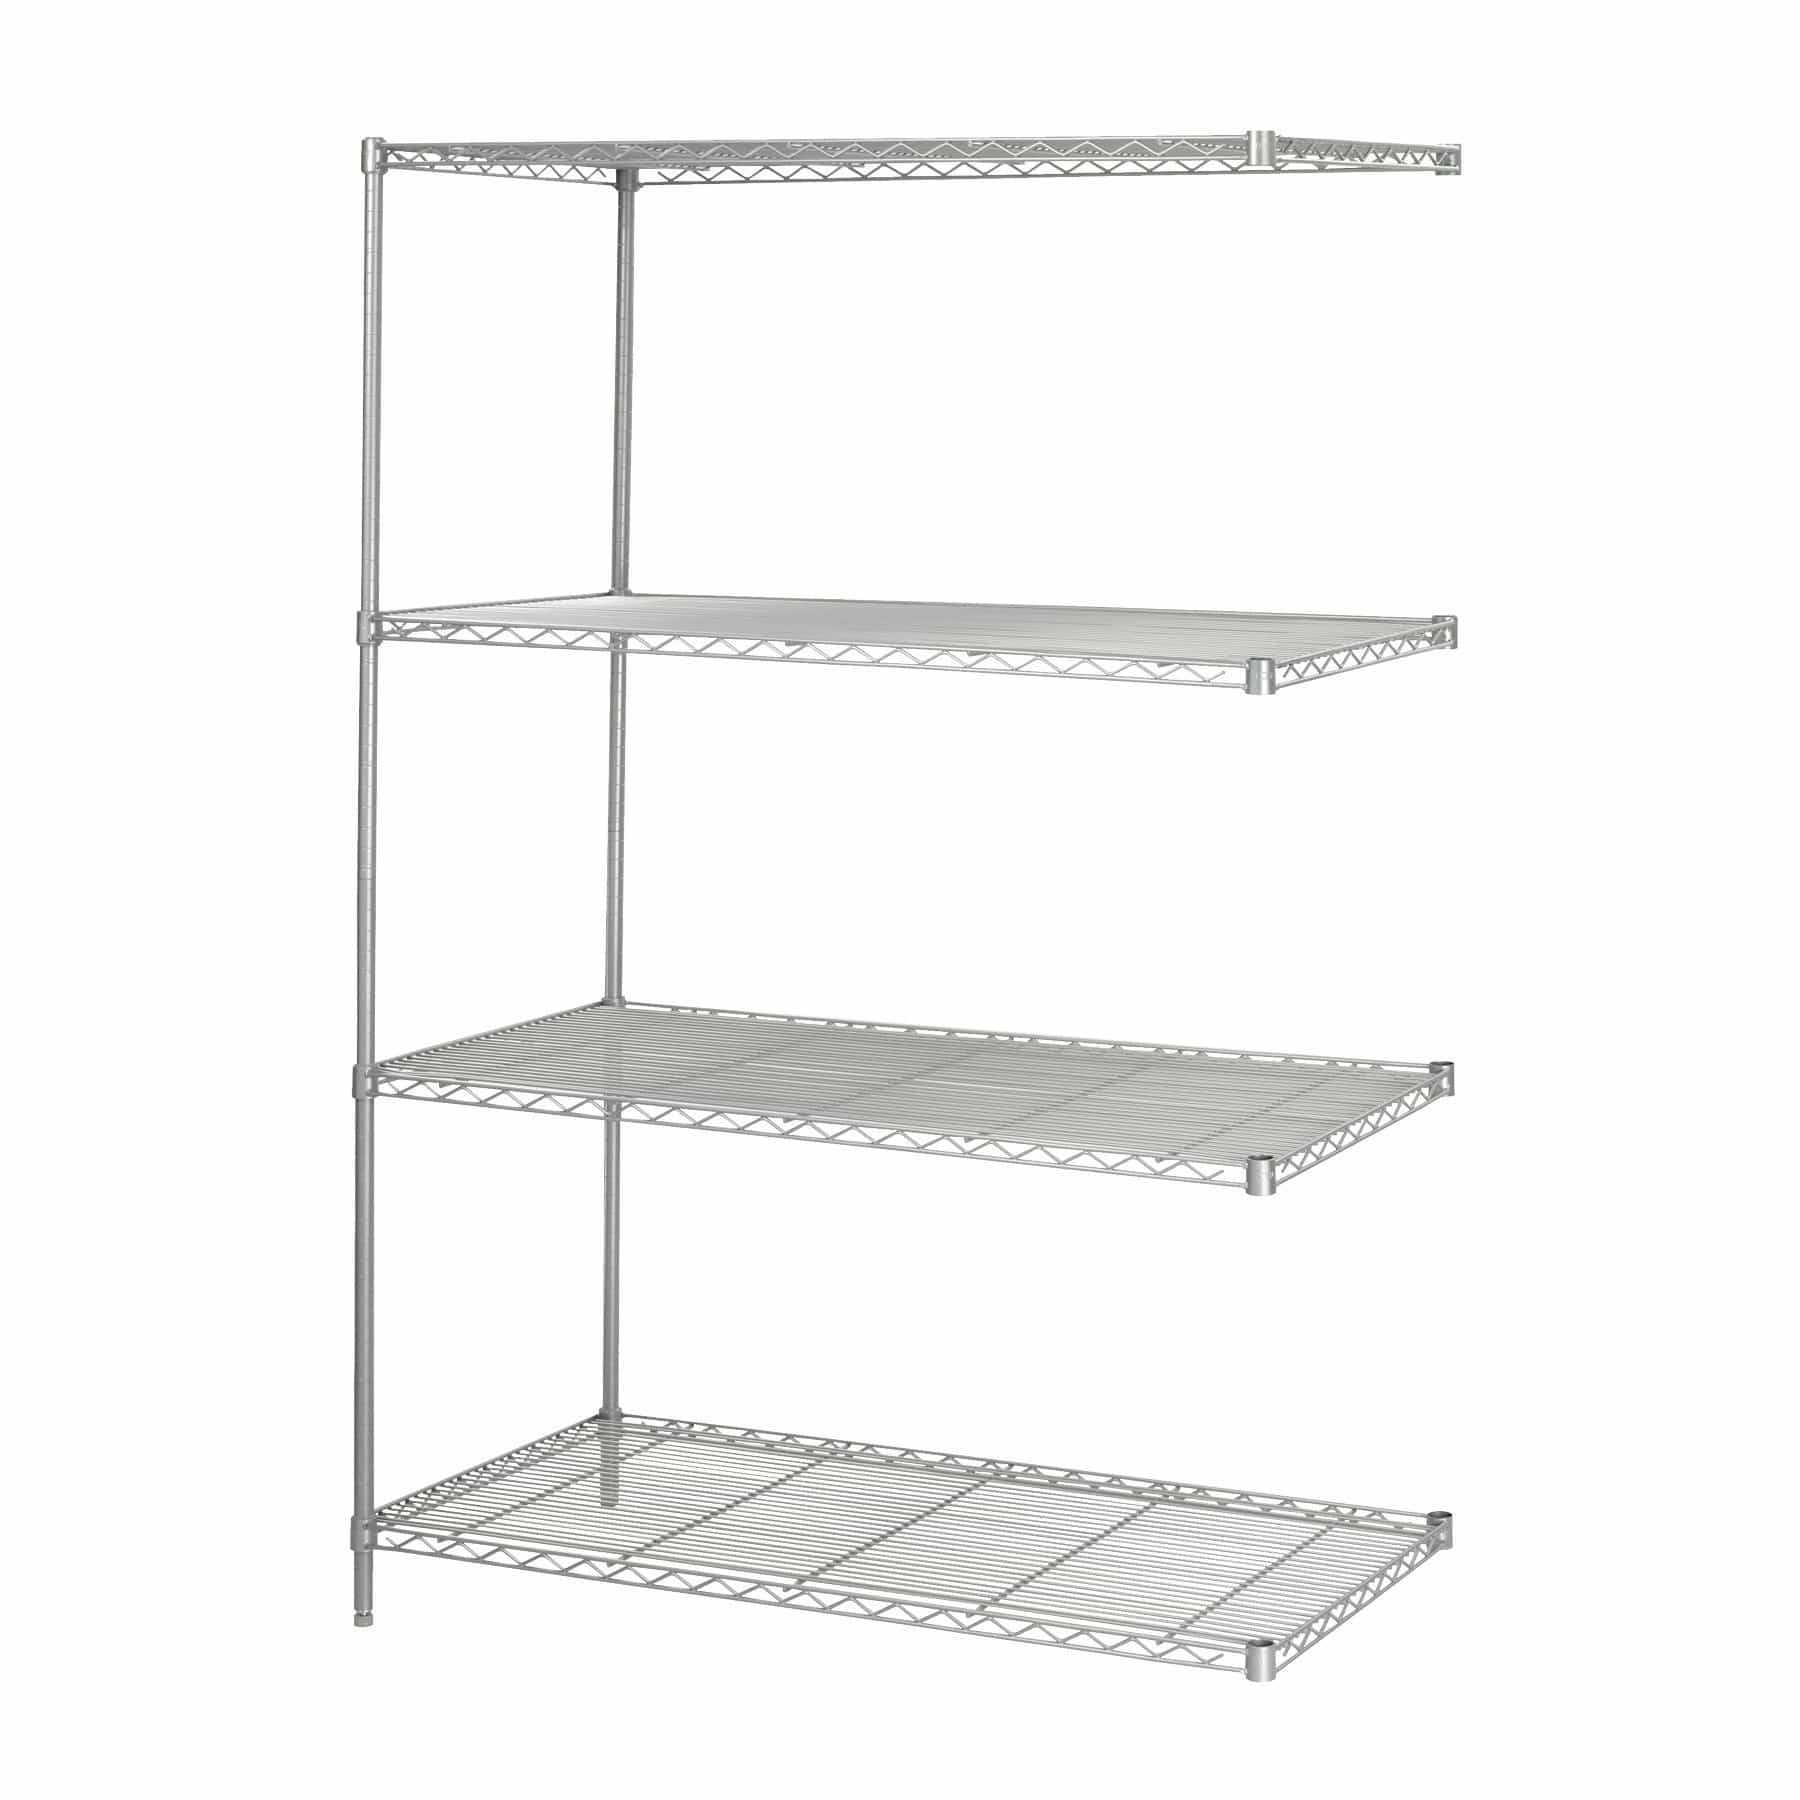 bedinhome - Safco Industrial 48 In x 24 In Add-On Kit welded wire Shelving storage shelf - Safco - Wire Shelving